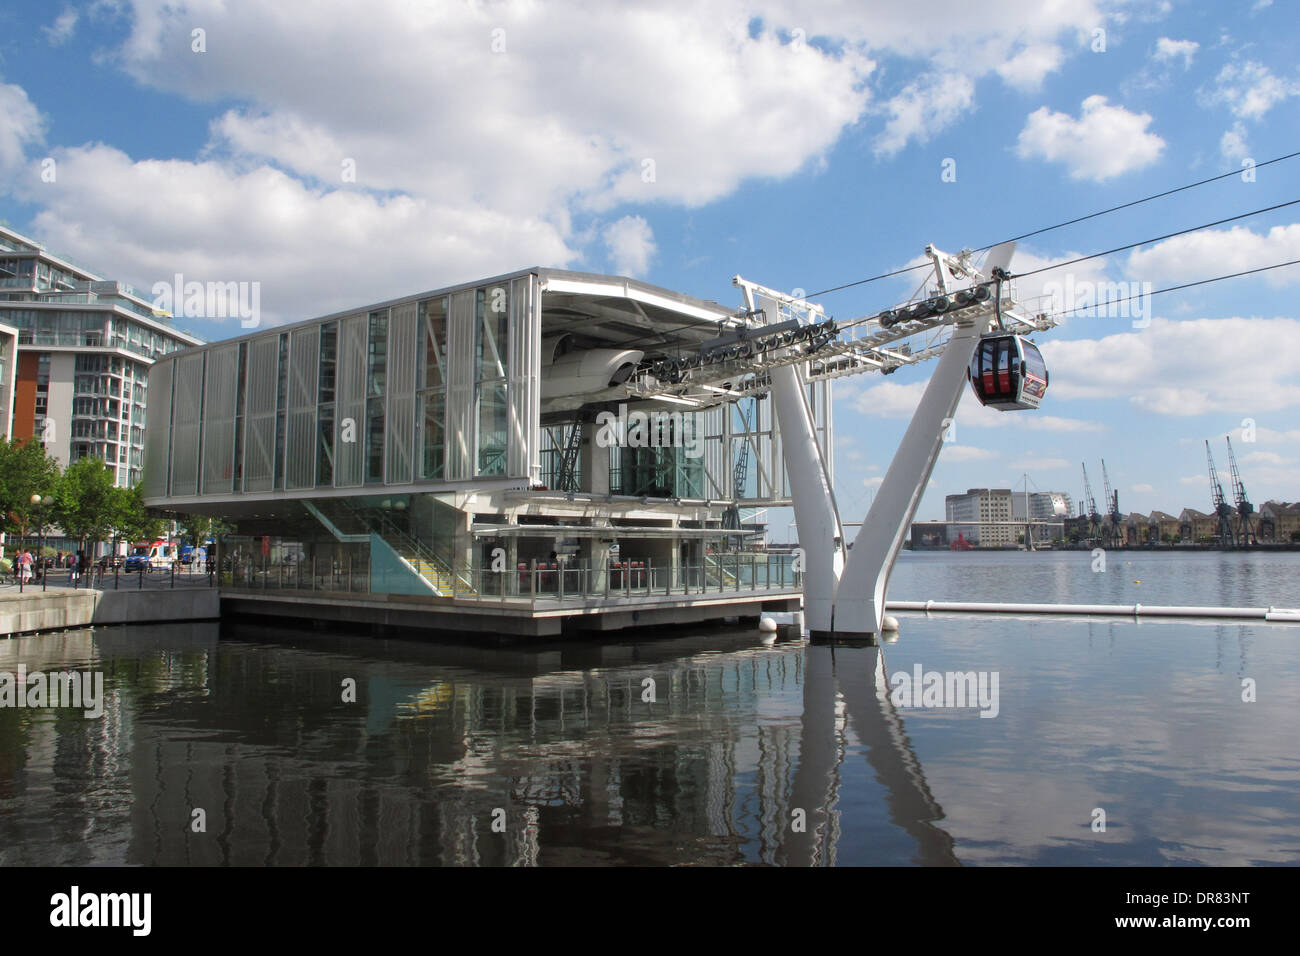 Emirates Royal Dock Station, The Northern Terminus For The Thames Cable Car River Crossing. - Stock Image